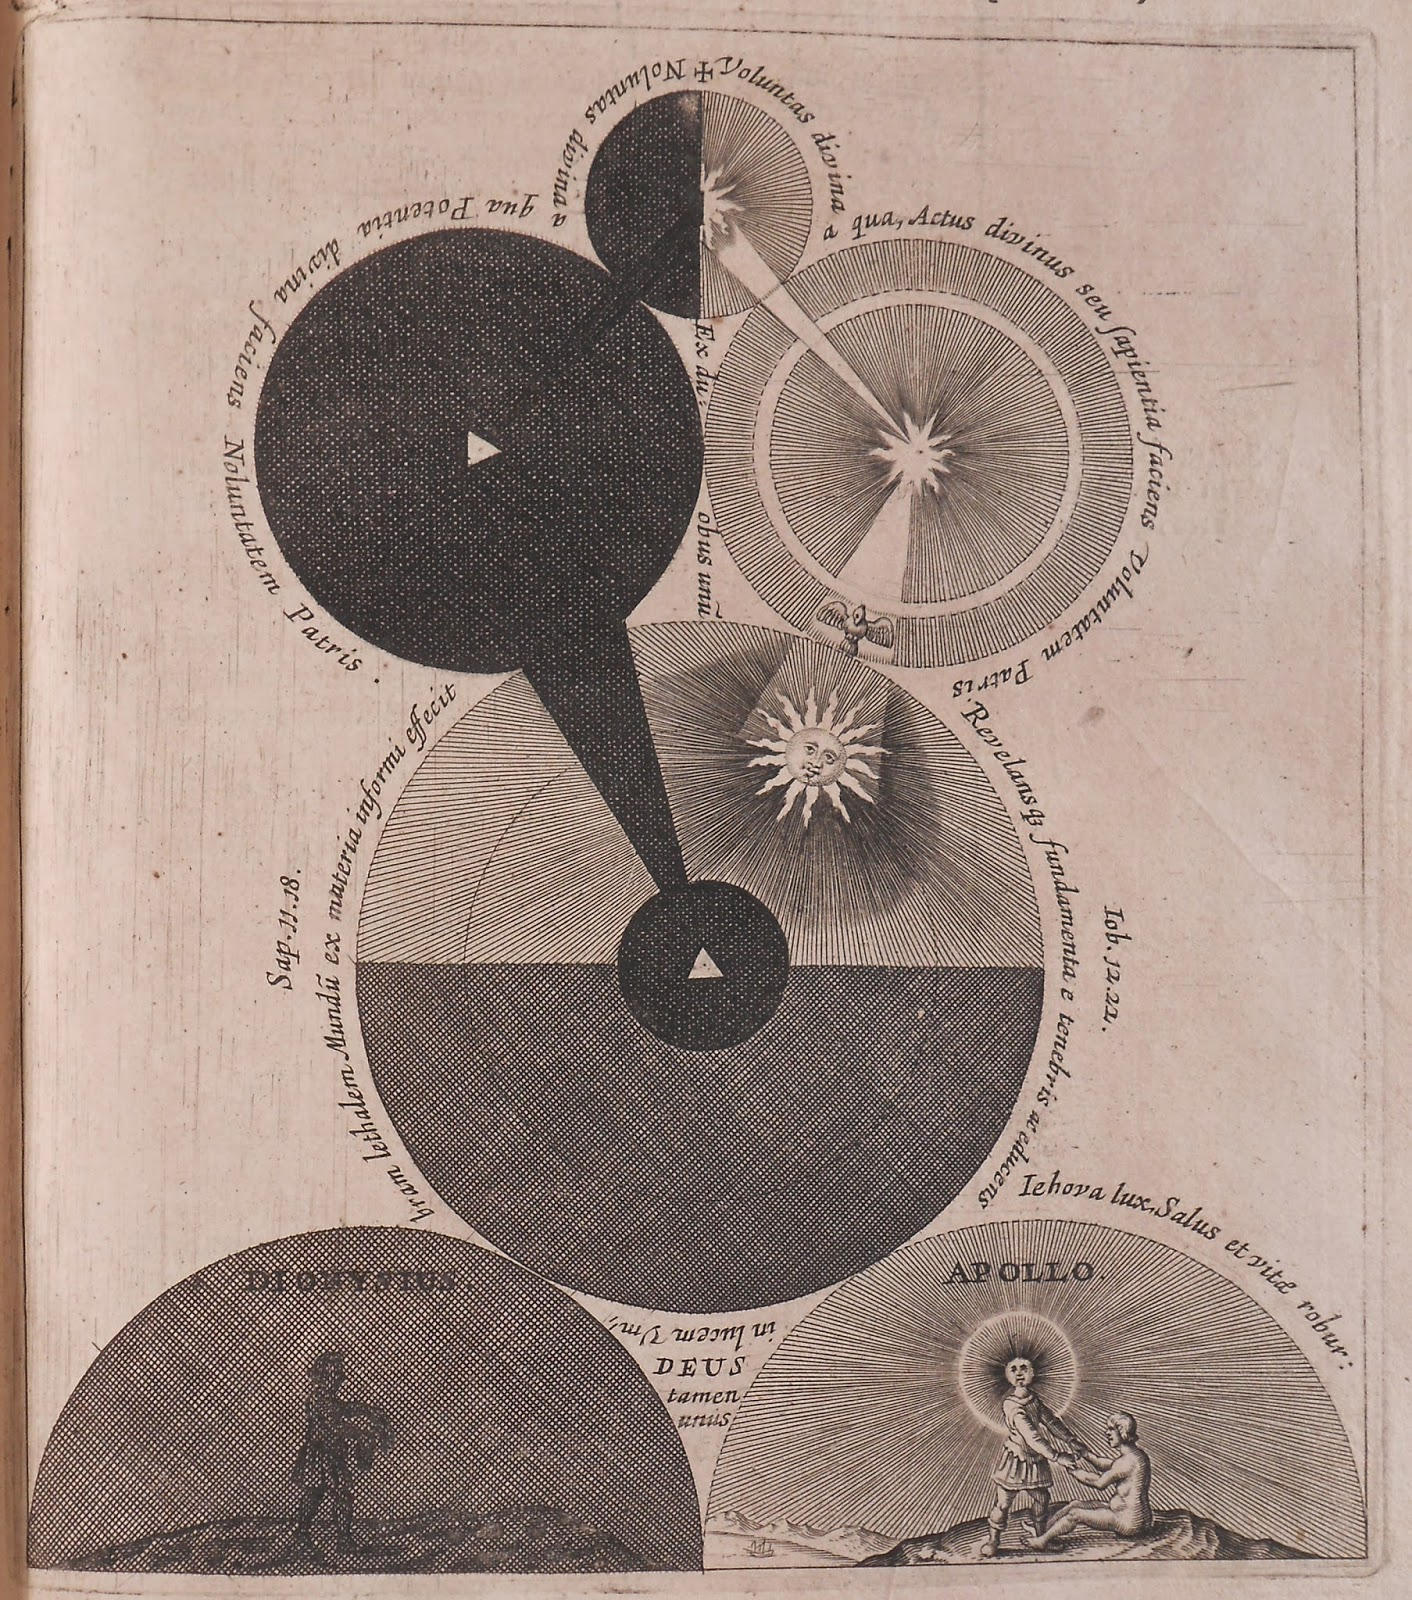 A diagram showing various spherical celestial bodies, as well as small depictions of Dionysus and Apollo.